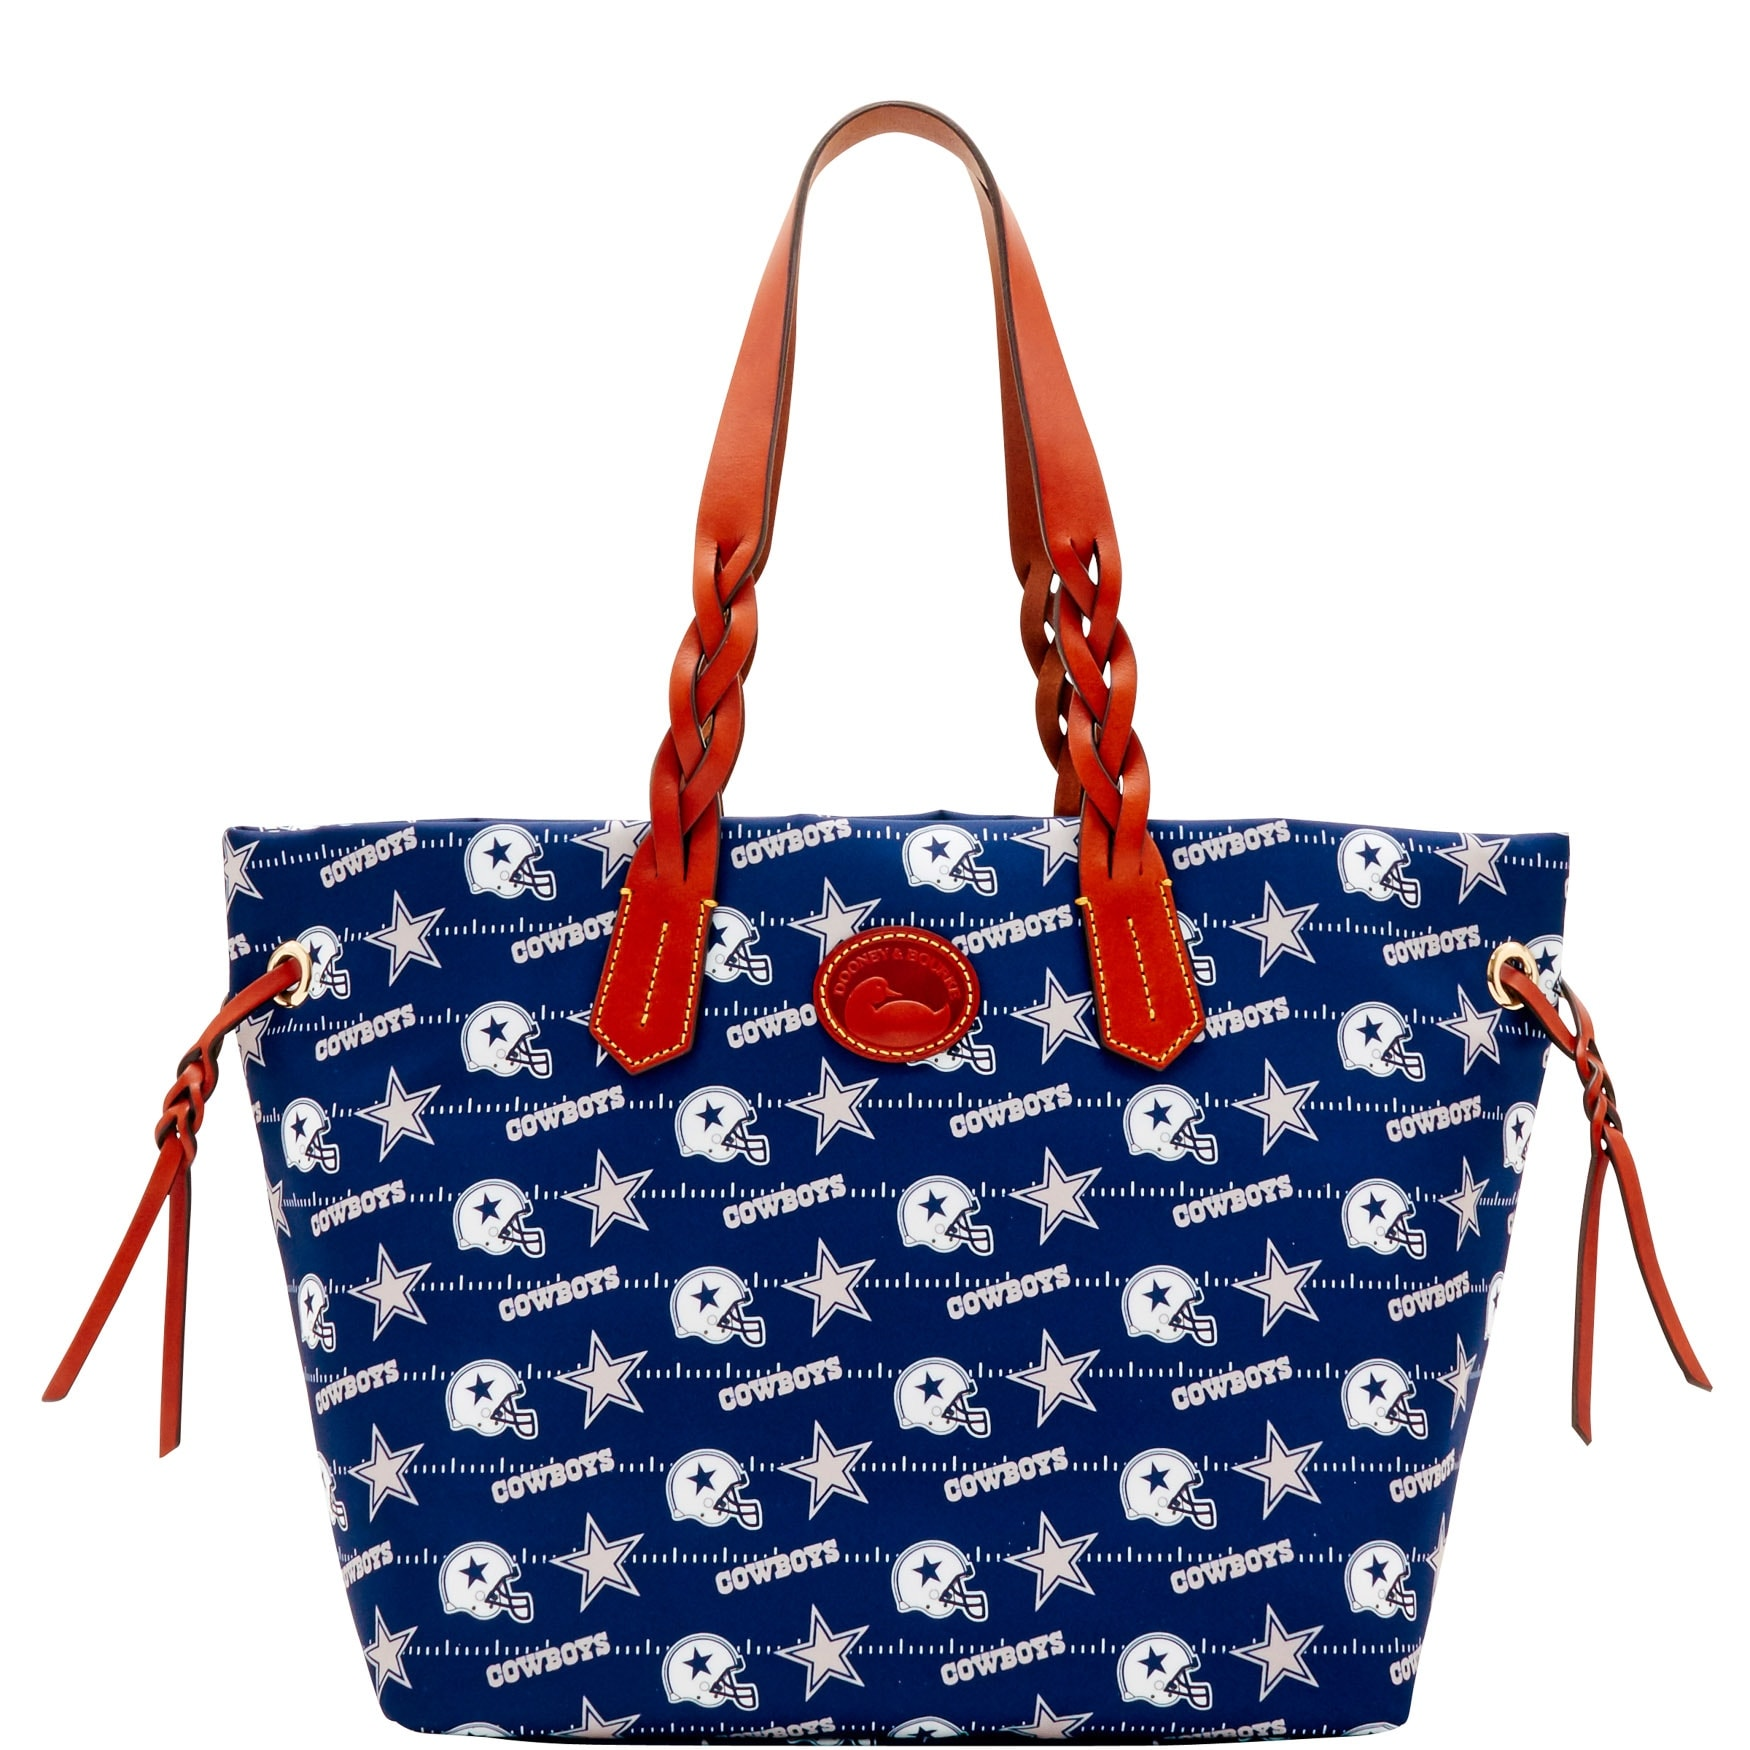 9ec33924f69 Shop Dooney & Bourke NFL Dallas Cowboys Shopper Tote (Introduced by Dooney  & Bourke at $198 in Aug 2017) - Free Shipping Today - Overstock - 23141634